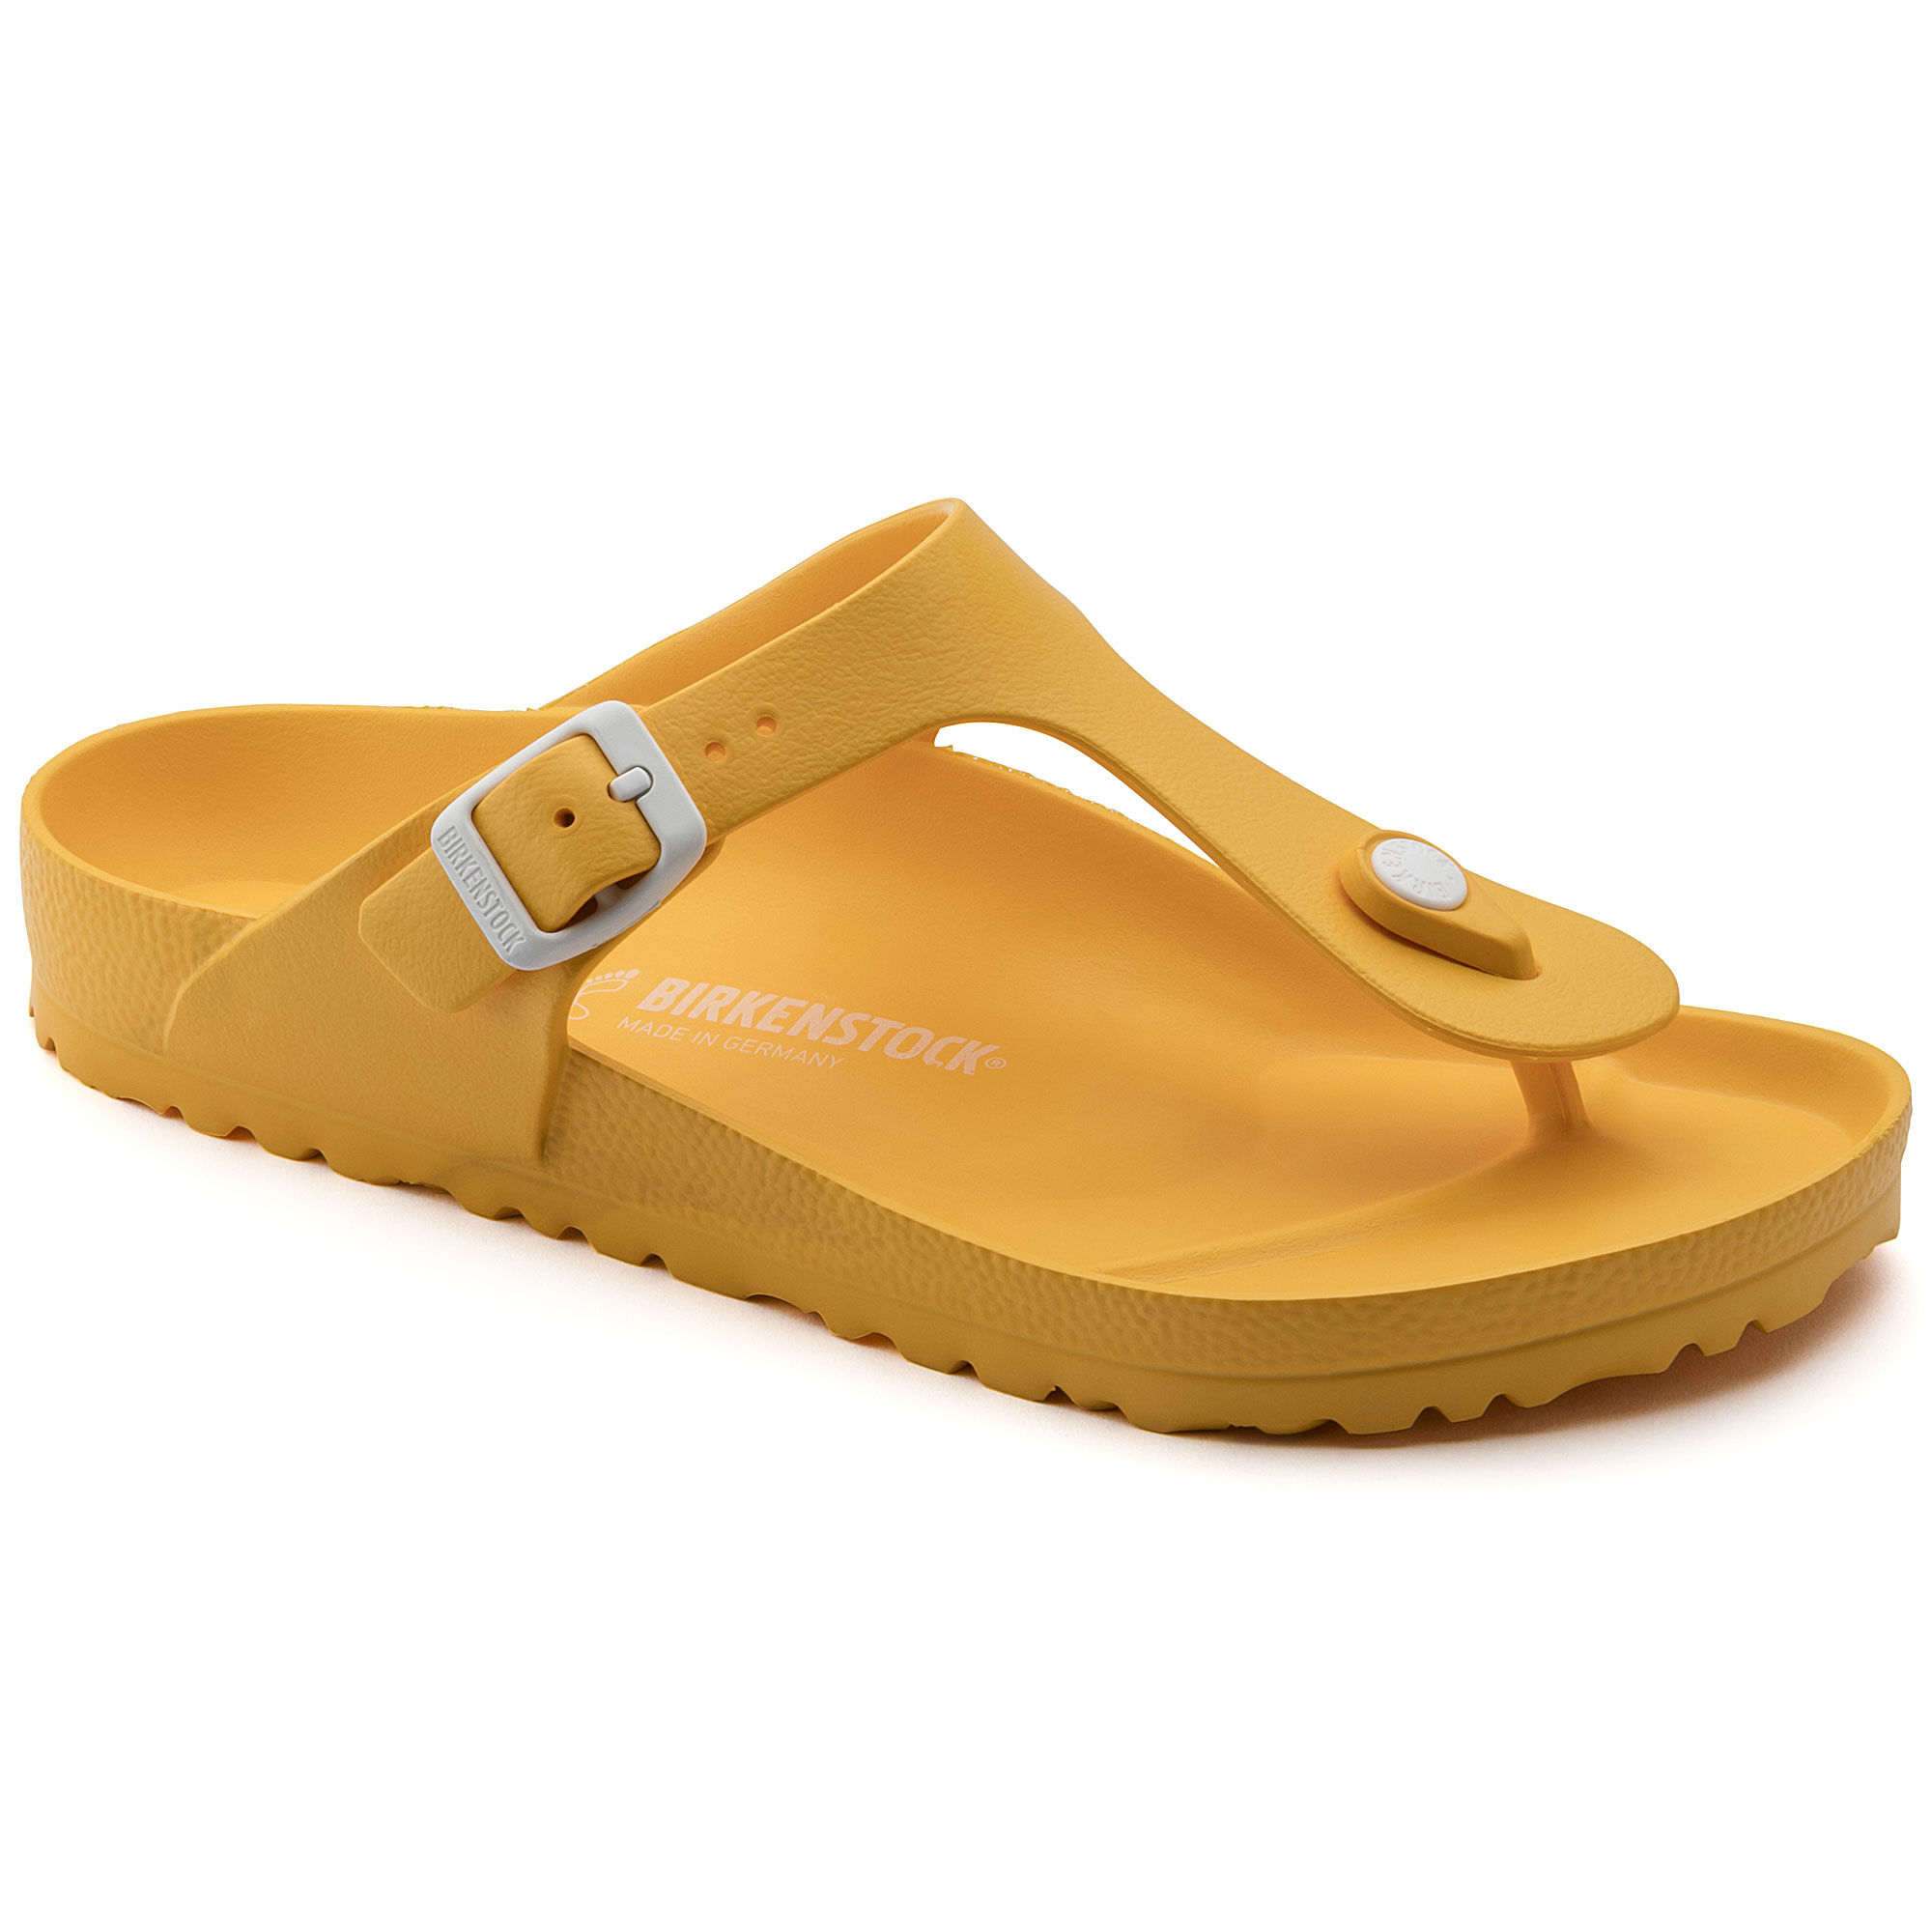 Birkenstock Gizeh Sandals for Women Yellow